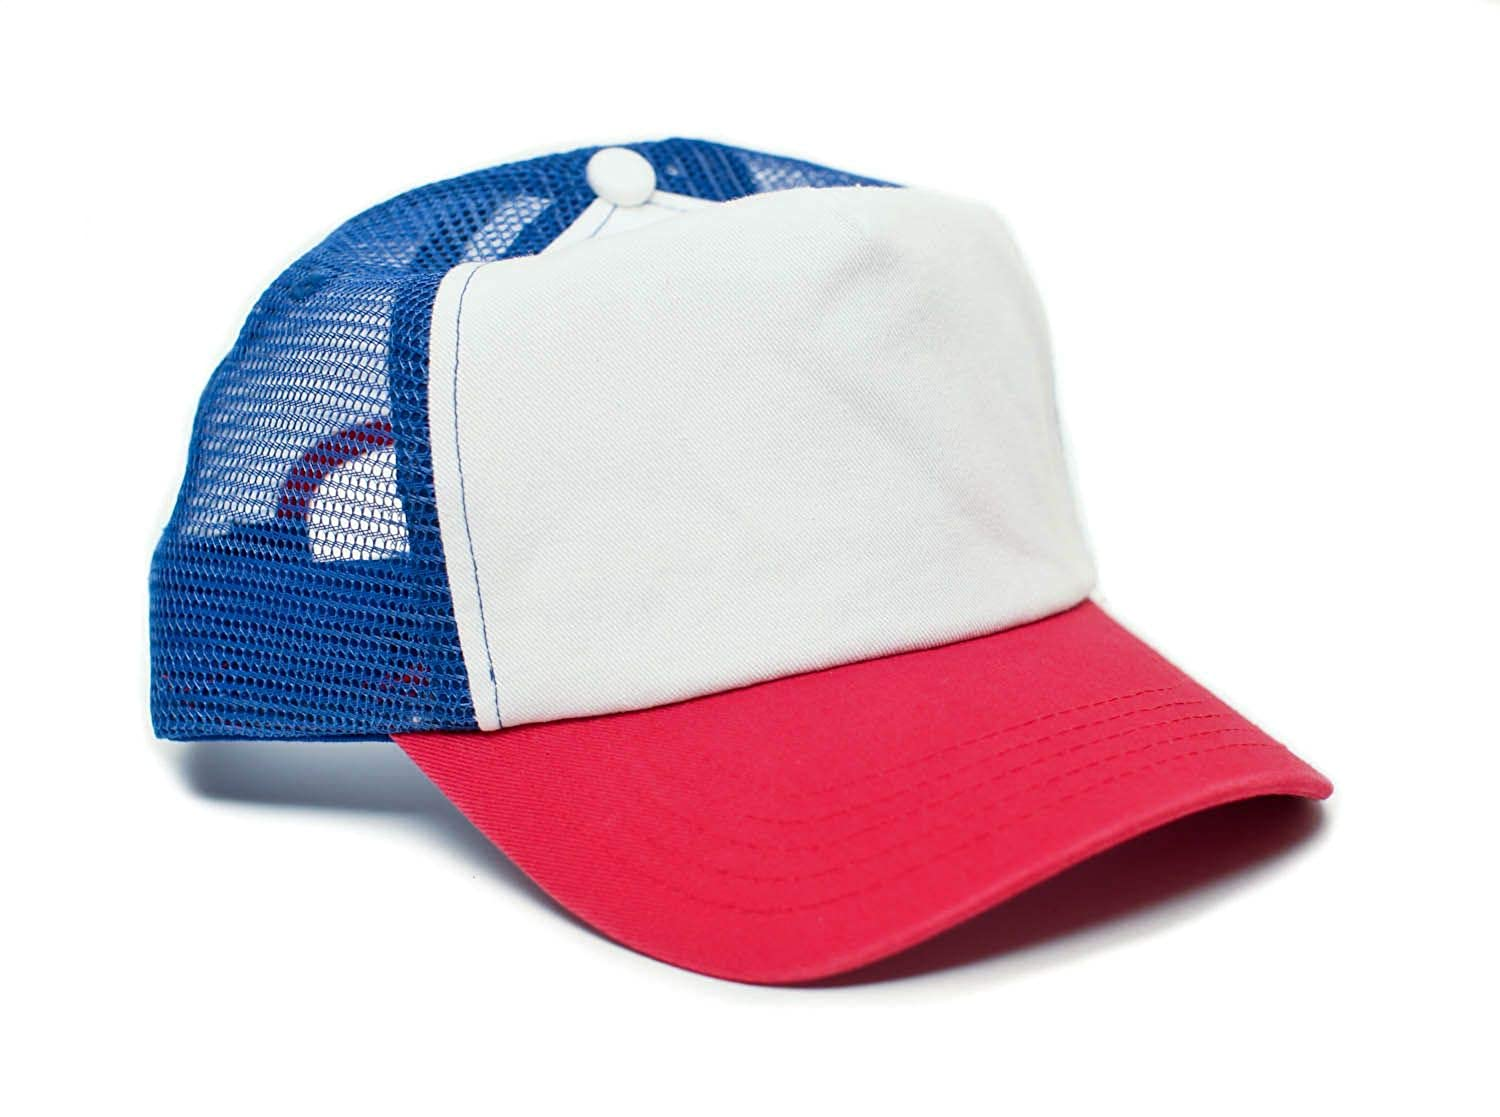 Stranger Things Movie Cap Hat Red White Cotton Royal mesh unisex-adult  Snapback at Amazon Men s Clothing store  1a9a82135b5